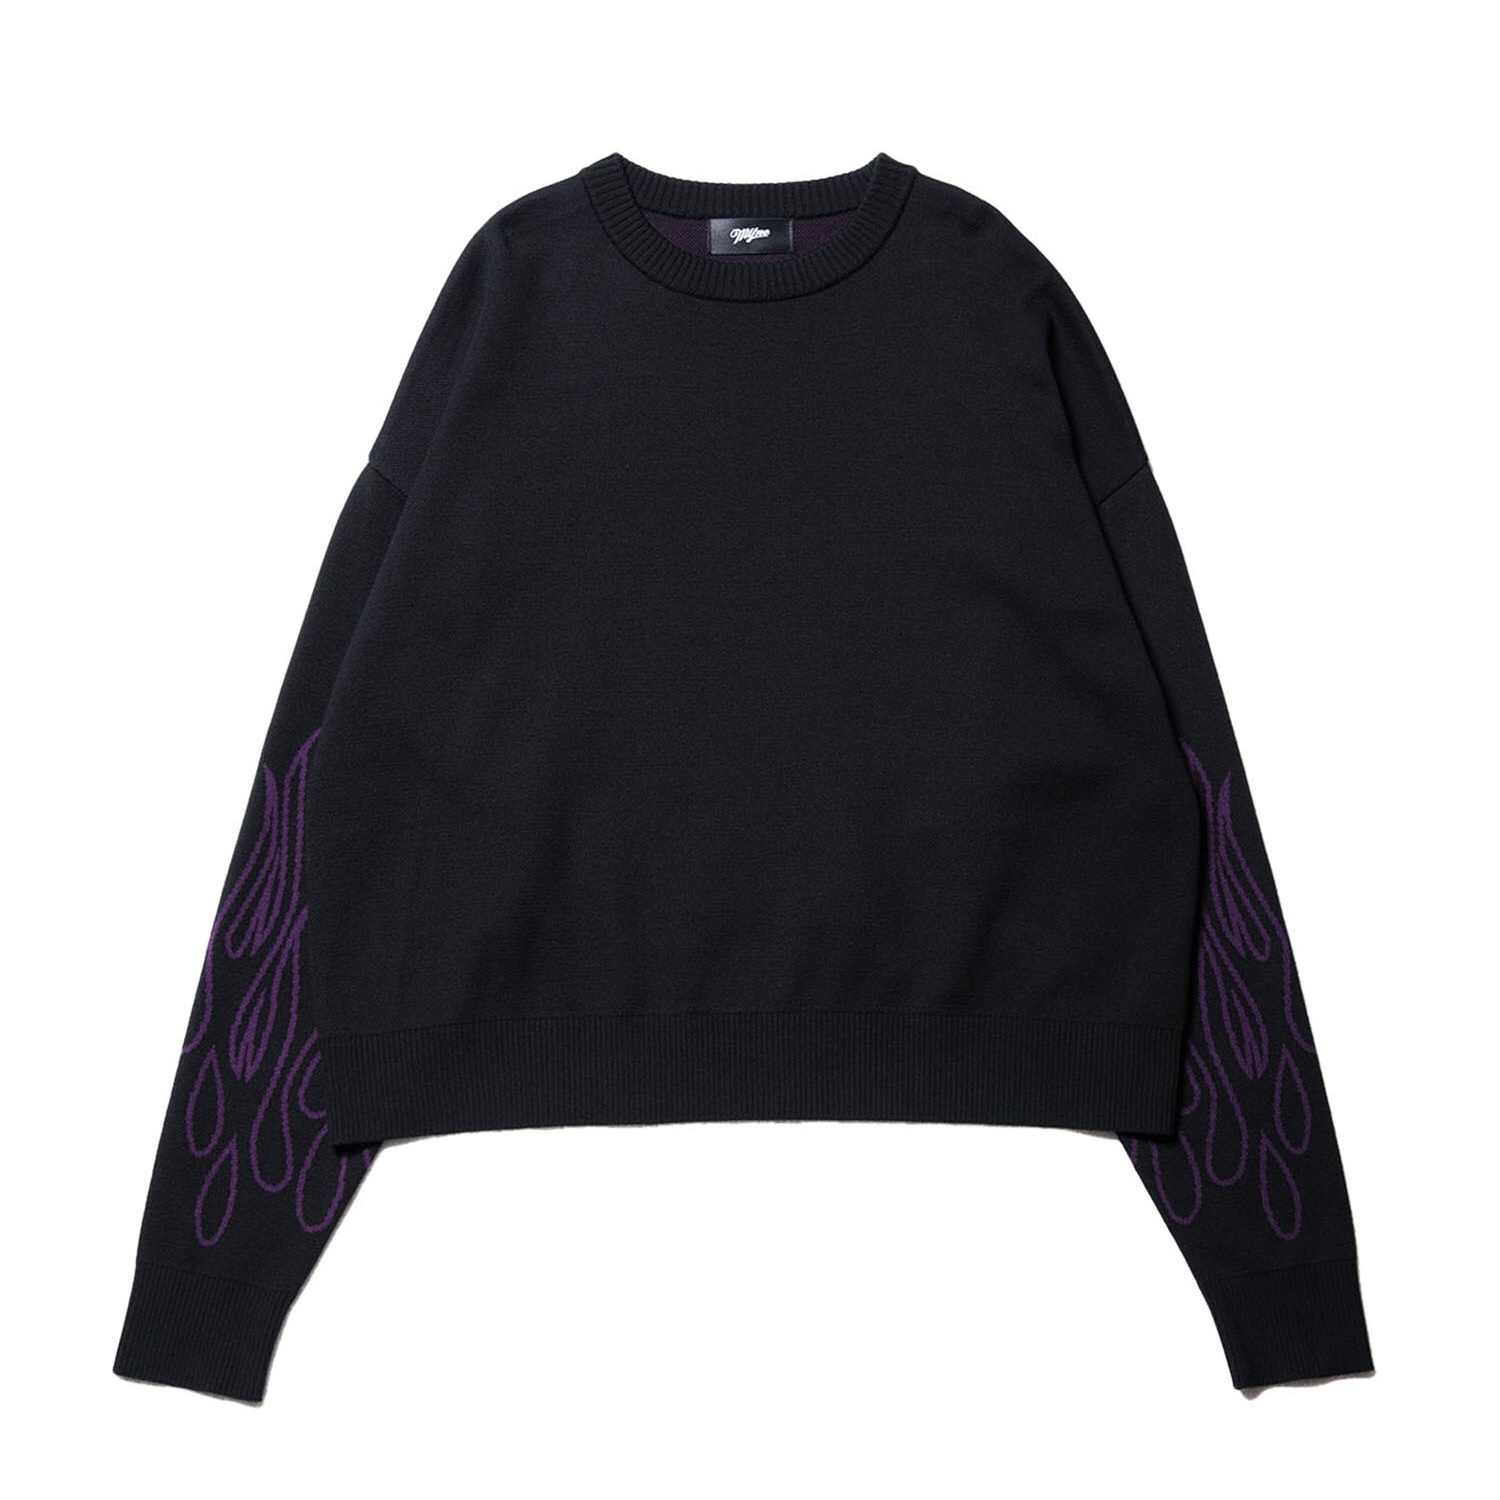 Fire knit pullover / BLACK - 画像1